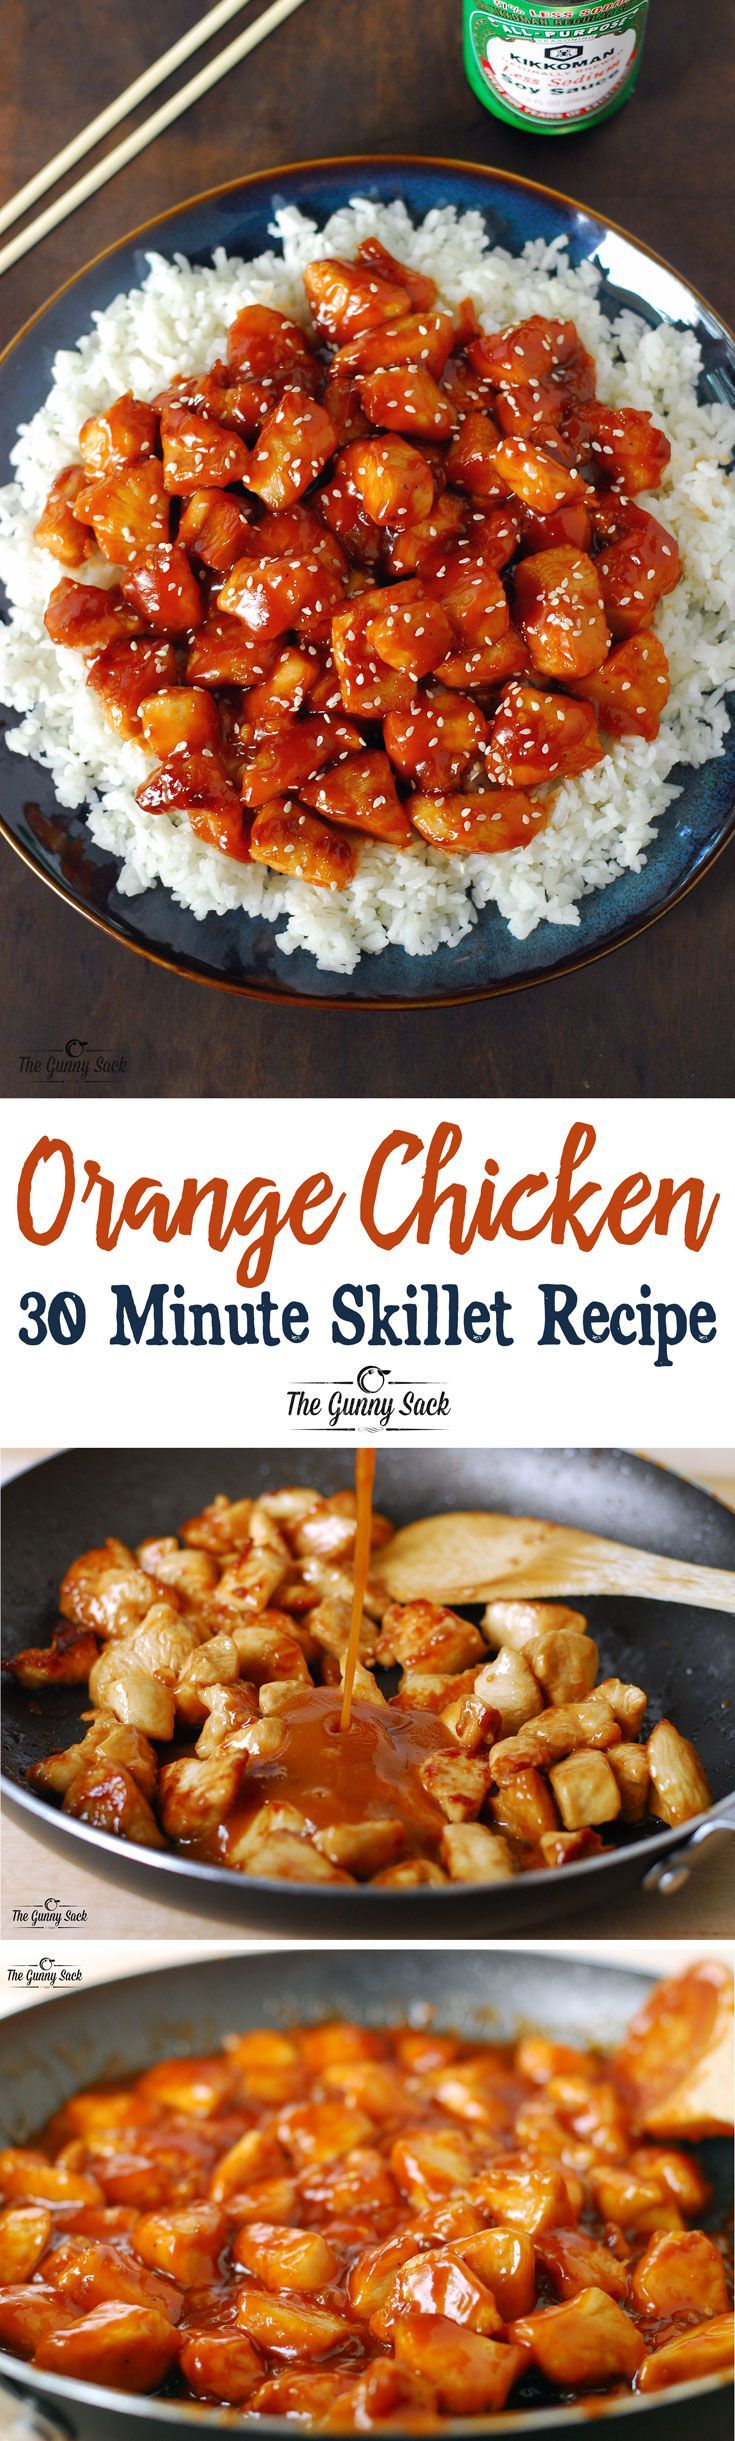 Best 25 chinese chicken recipes ideas on pinterest spicy orange chicken 30 minute skillet recipe a easy dinner idea that is family friendly forumfinder